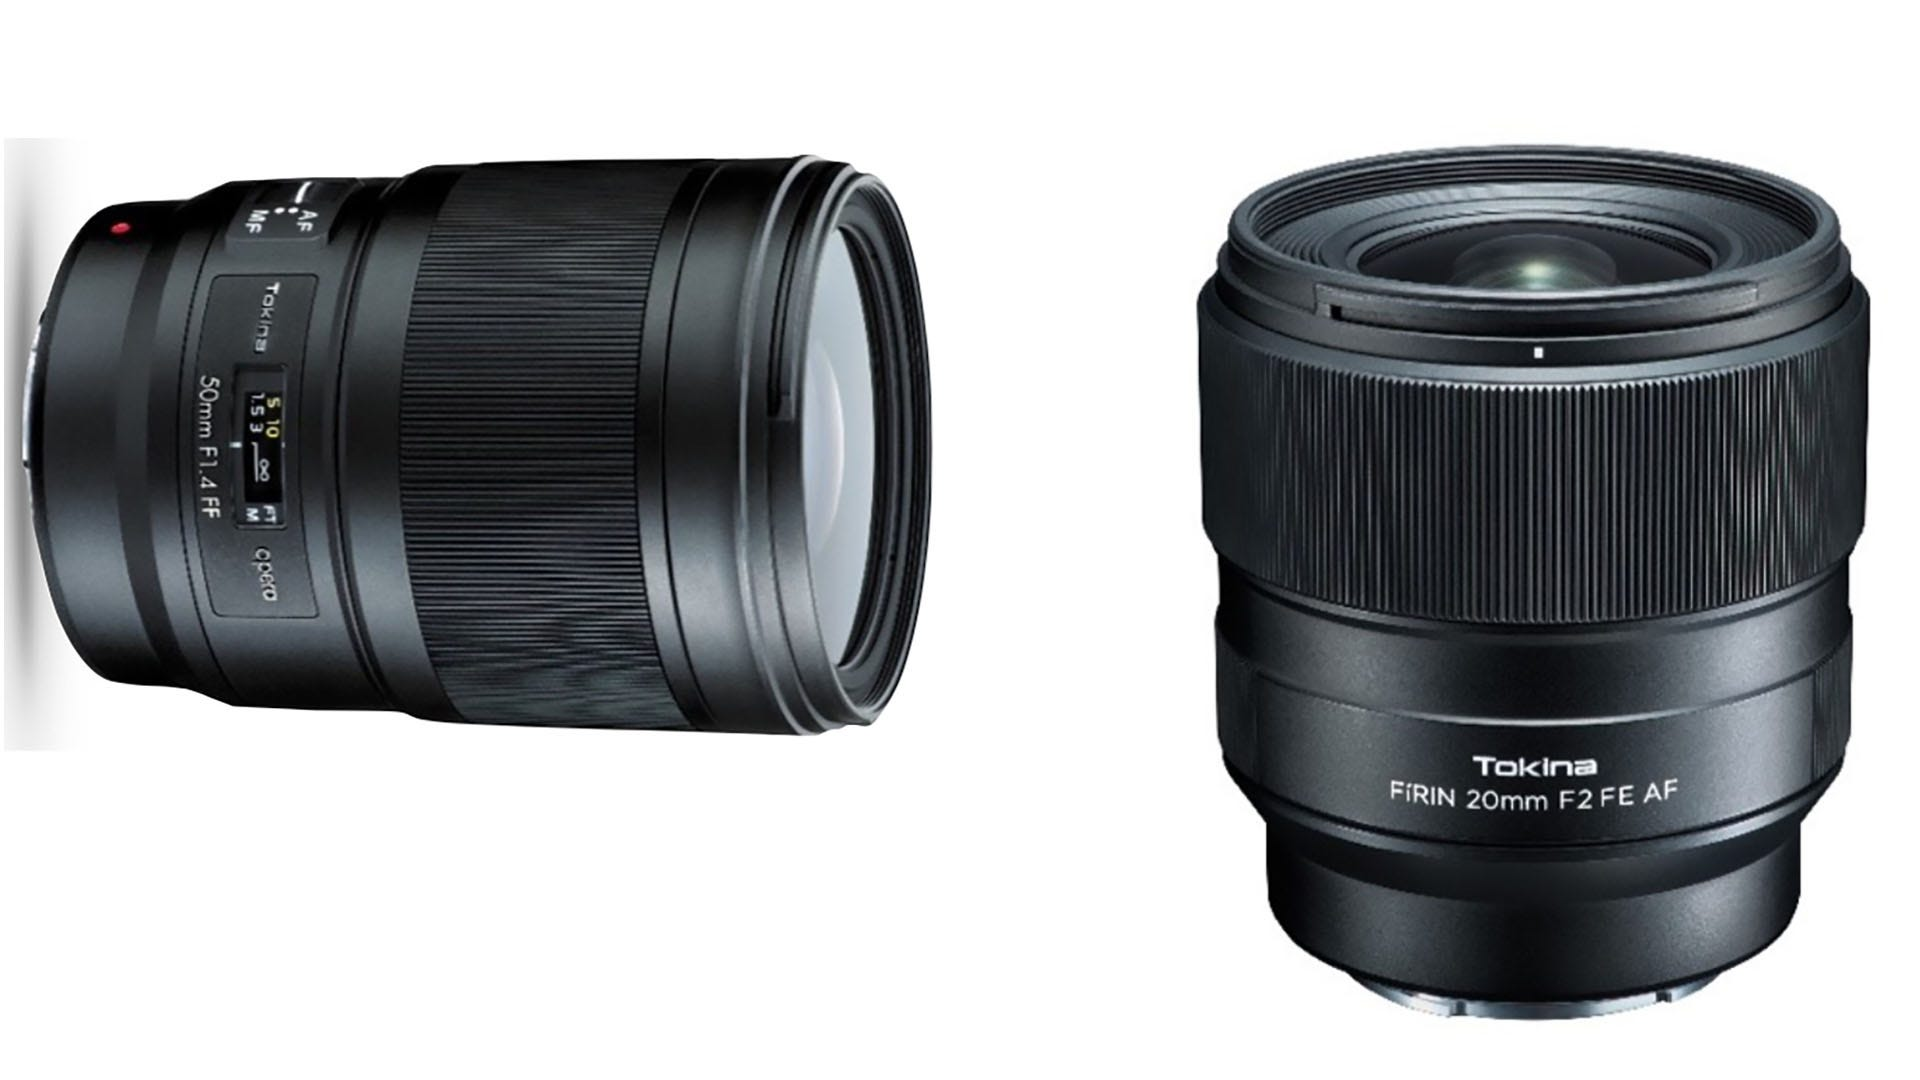 Tokina Displays 20mm f/2, 50mm f/1.4 New Generation of Prime Pro ...